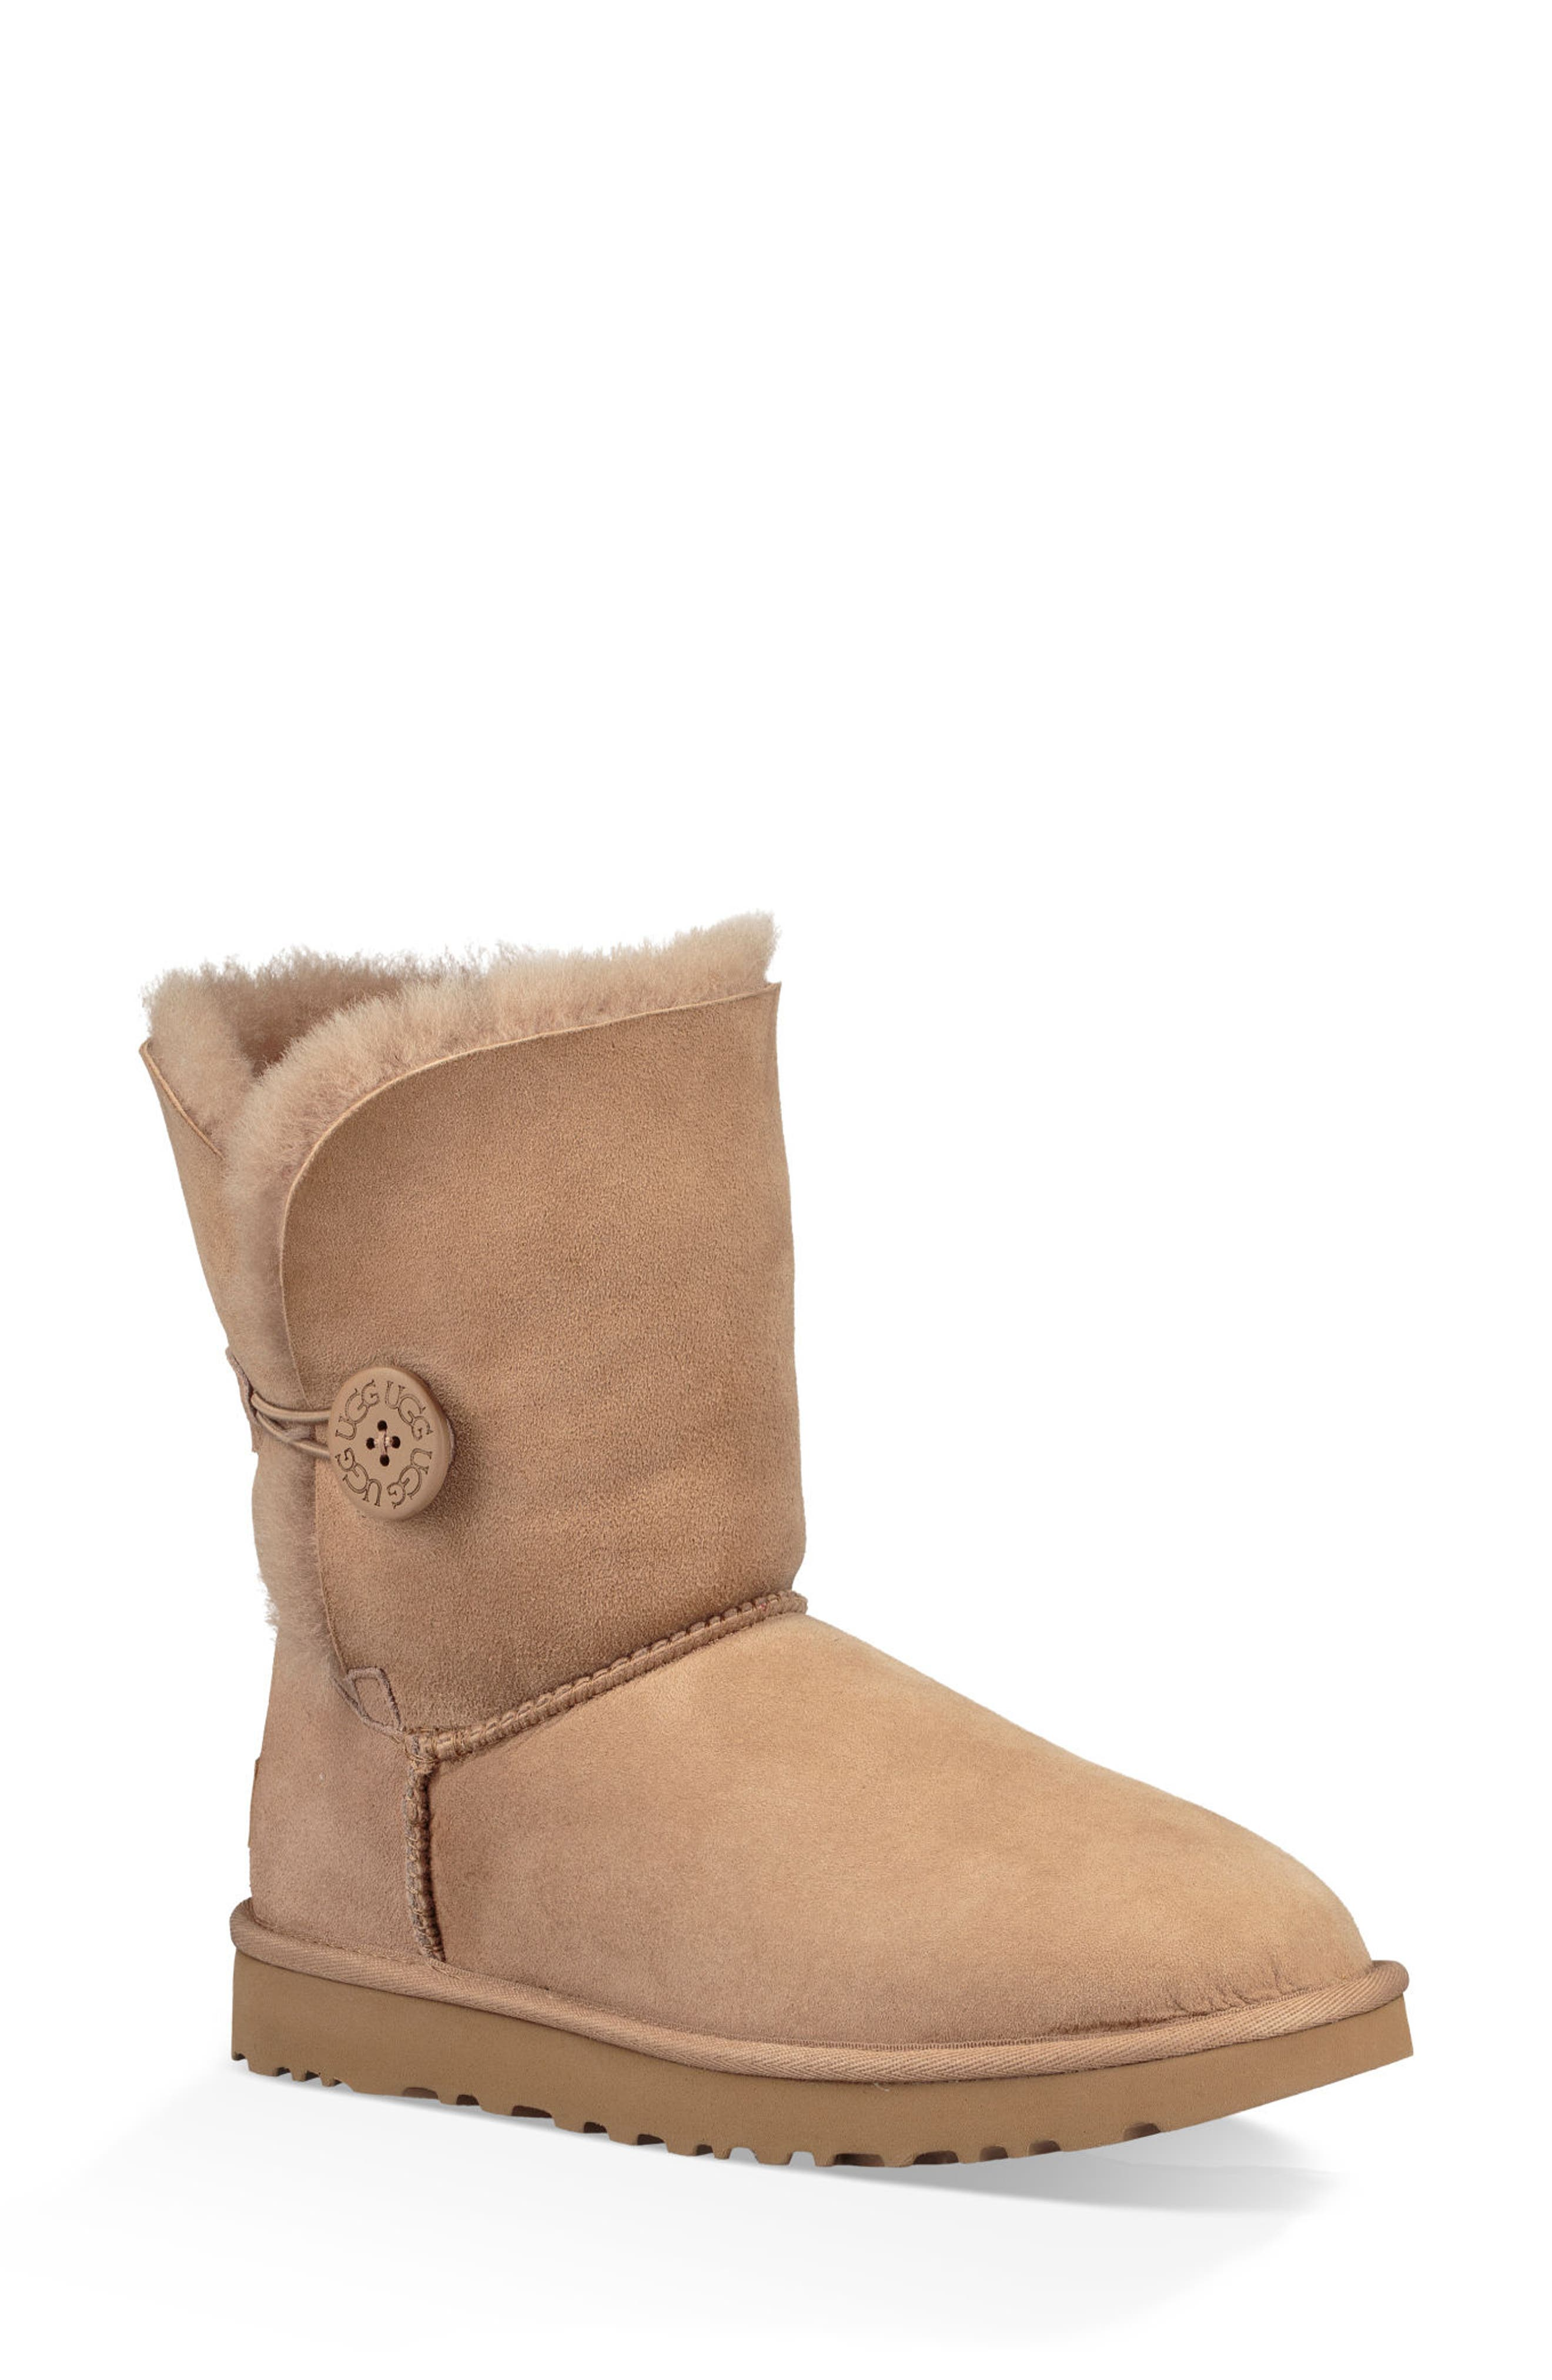 'Bailey Button II' Boot,                             Main thumbnail 1, color,                             Fawn Suede